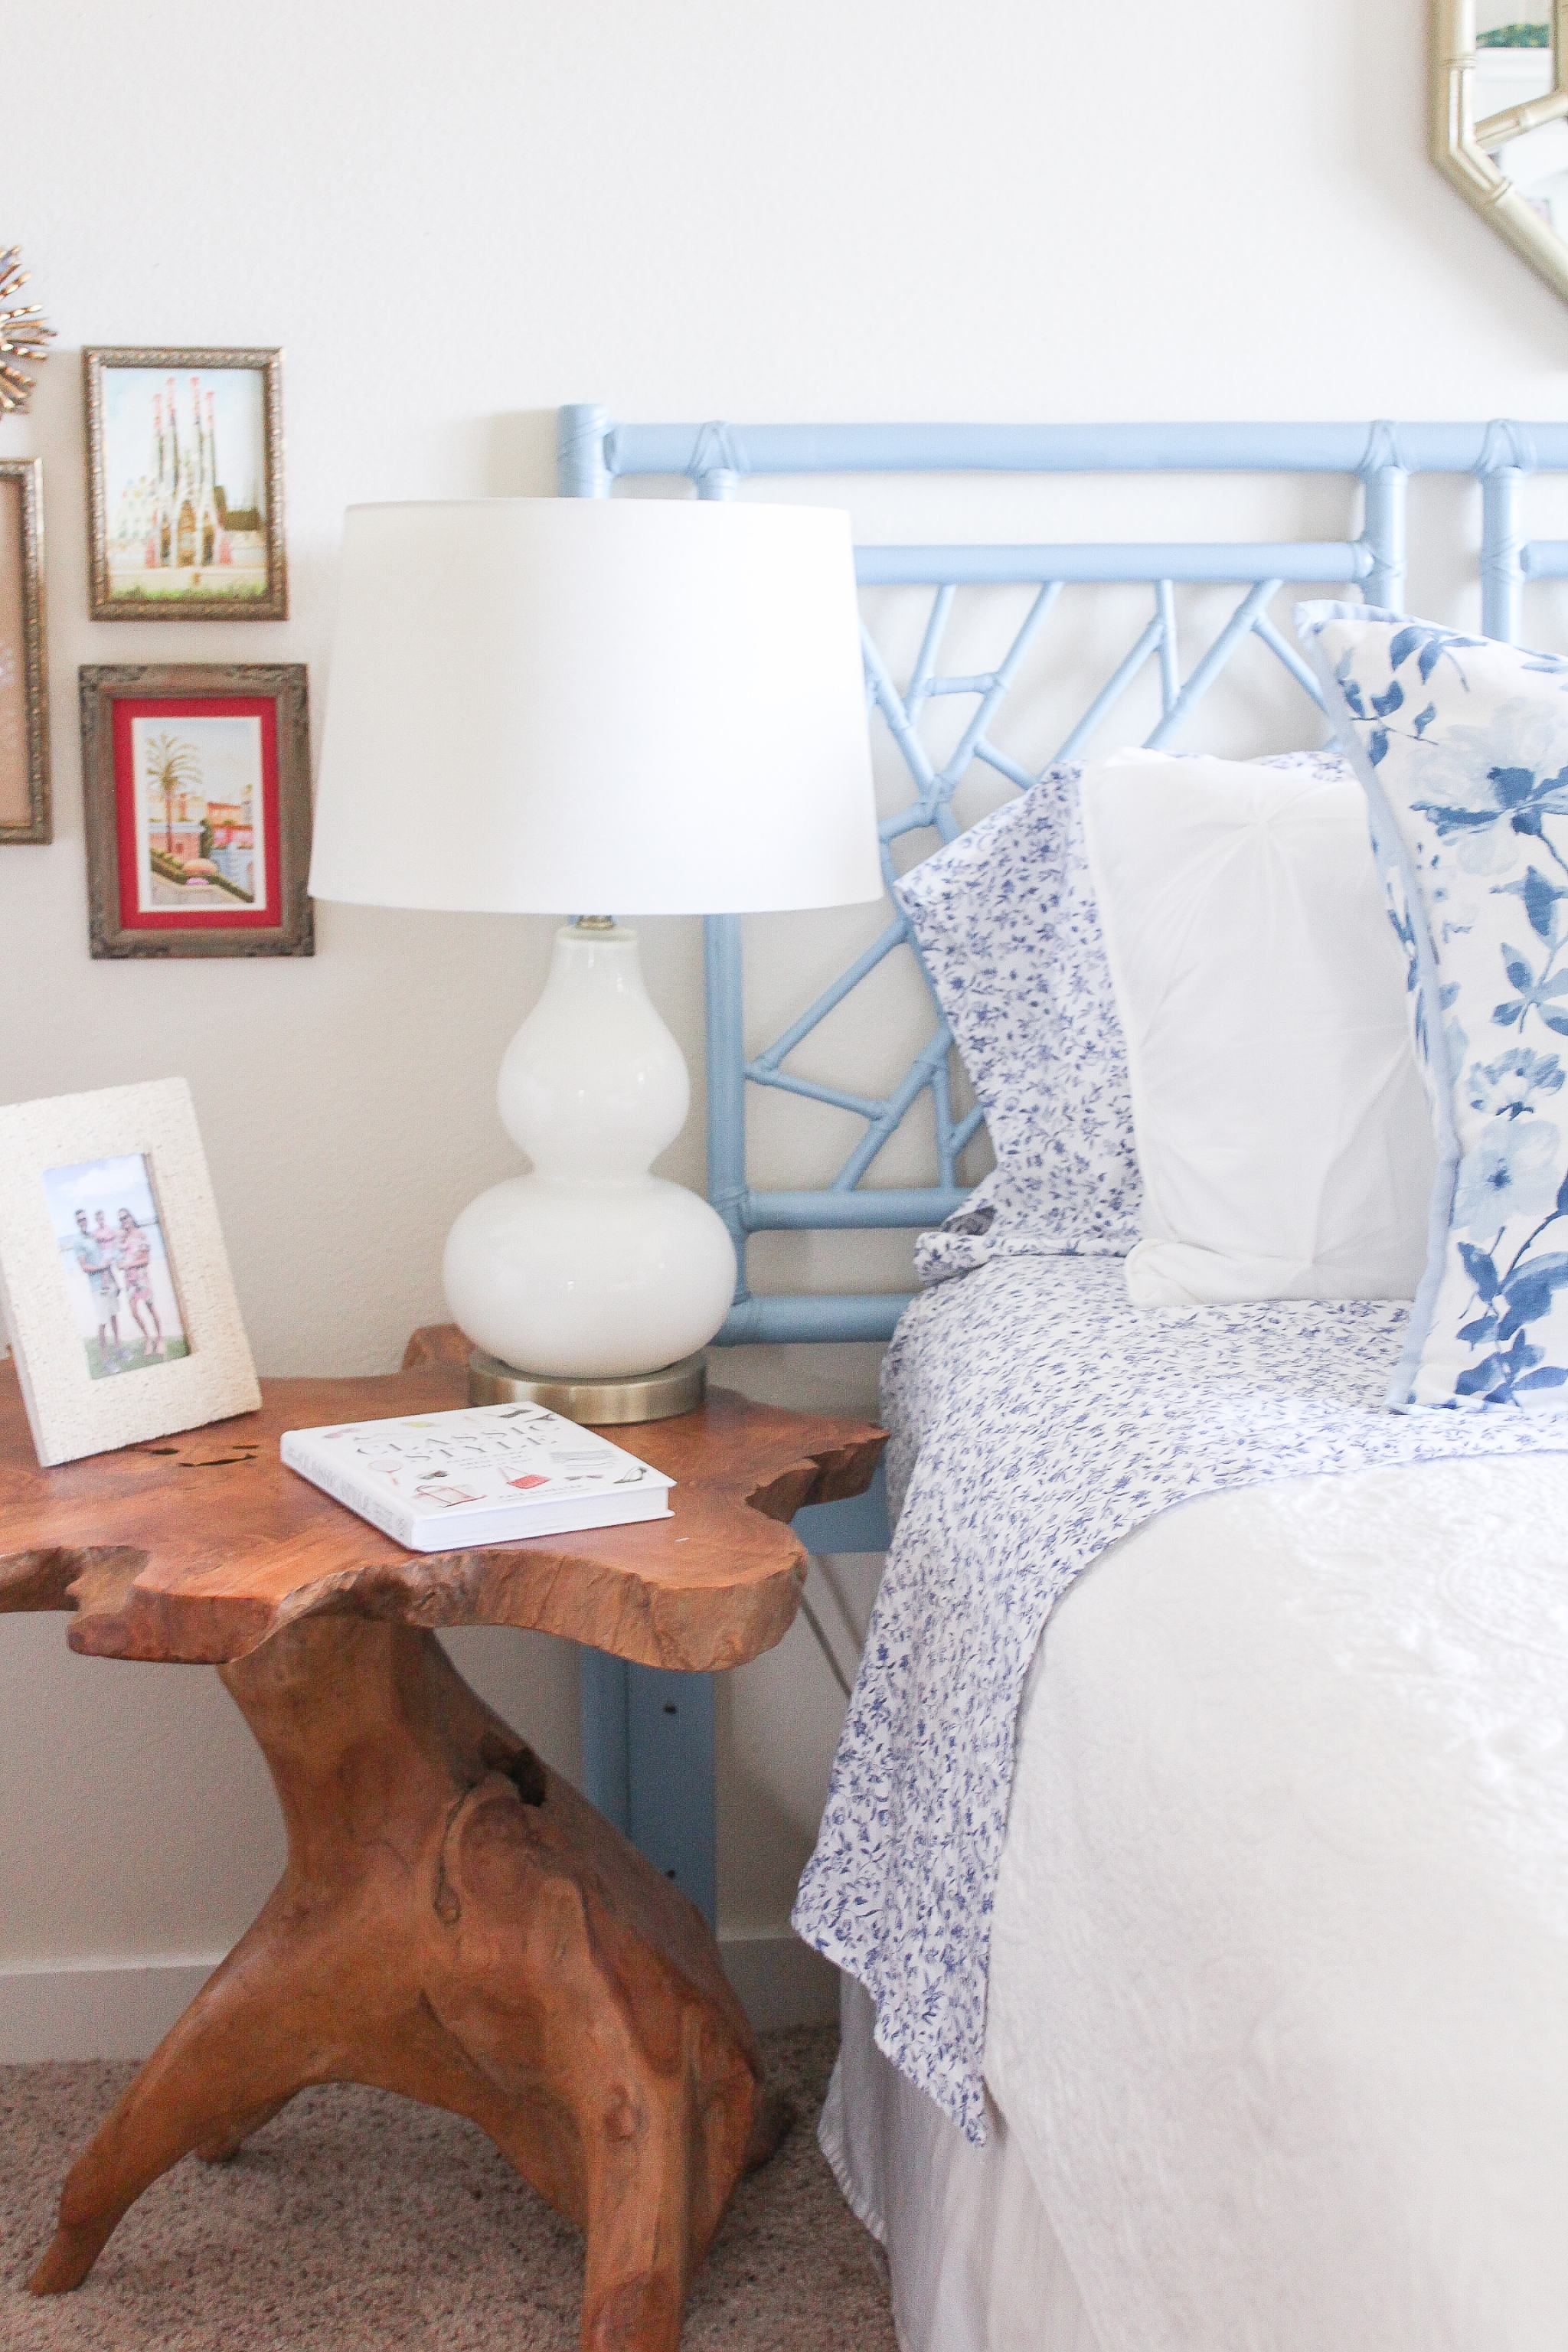 blue and white bedroom - faux bamboo mirror - vintage mirror - vintage bamboo headboard - vintage rattan headboard - blue rattan headboard - headboard DIY - hats on wall - rattan bookcase - rattan bookshelf - classic style - coastal style - monogrammed tote bag - bedroom inspo - bedroom decor - blue and white floral sheets - blue and white floral pillows - tuckernuck bow sunhat - raw edge table - hanging wall hooks - hanging wall hook rack - longchamp tote - preppy style